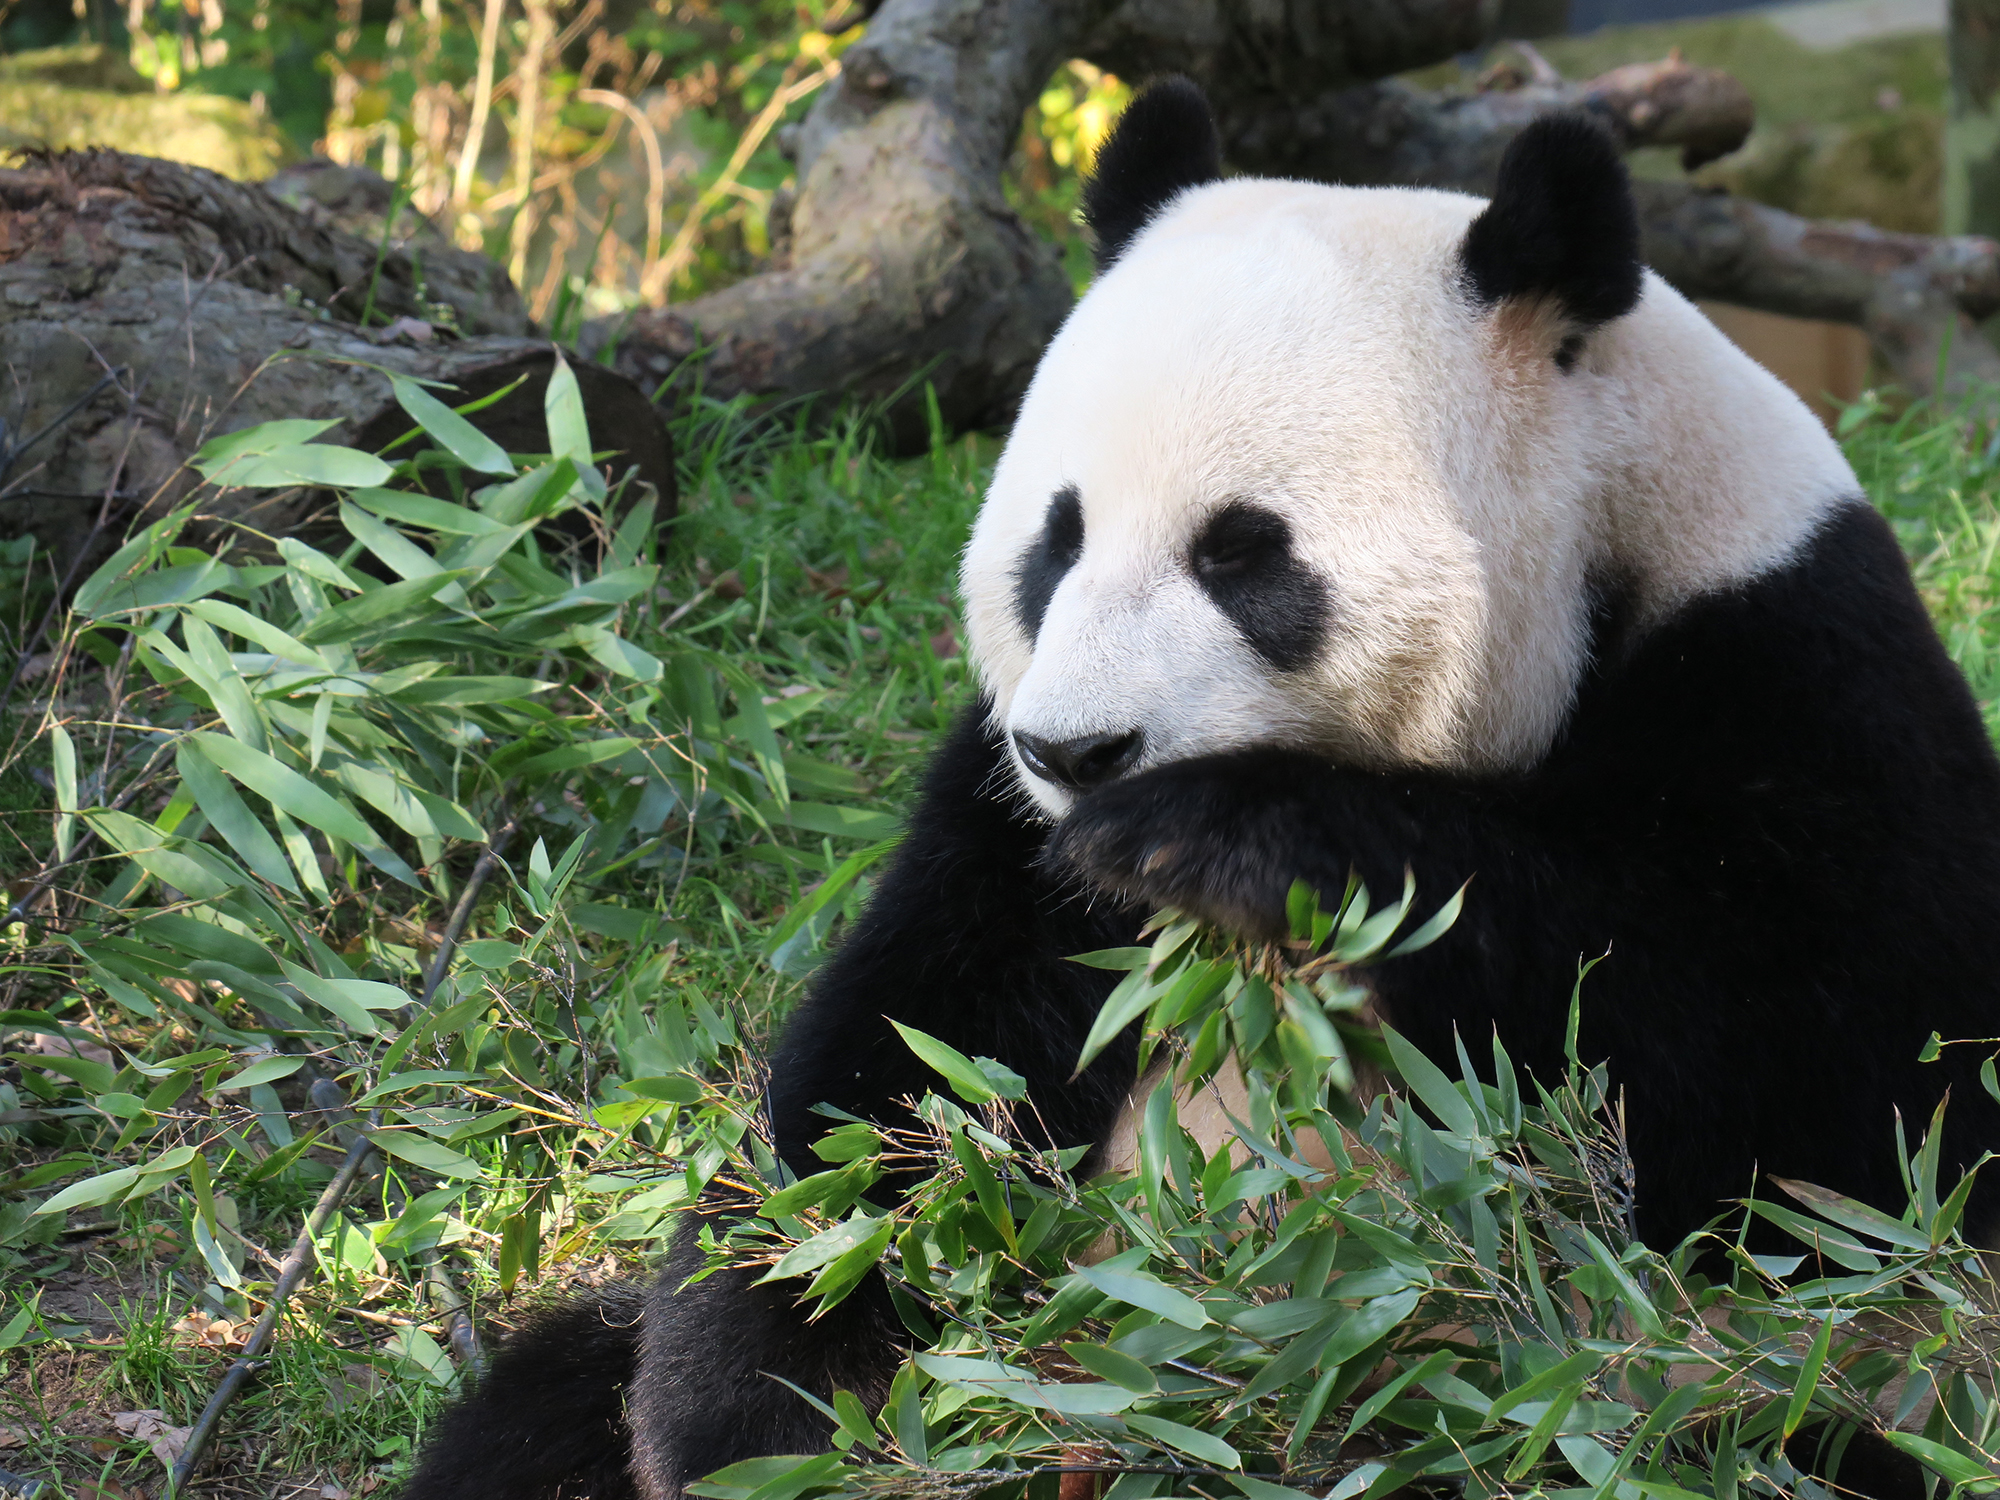 Panda surrounded by bamboo plants